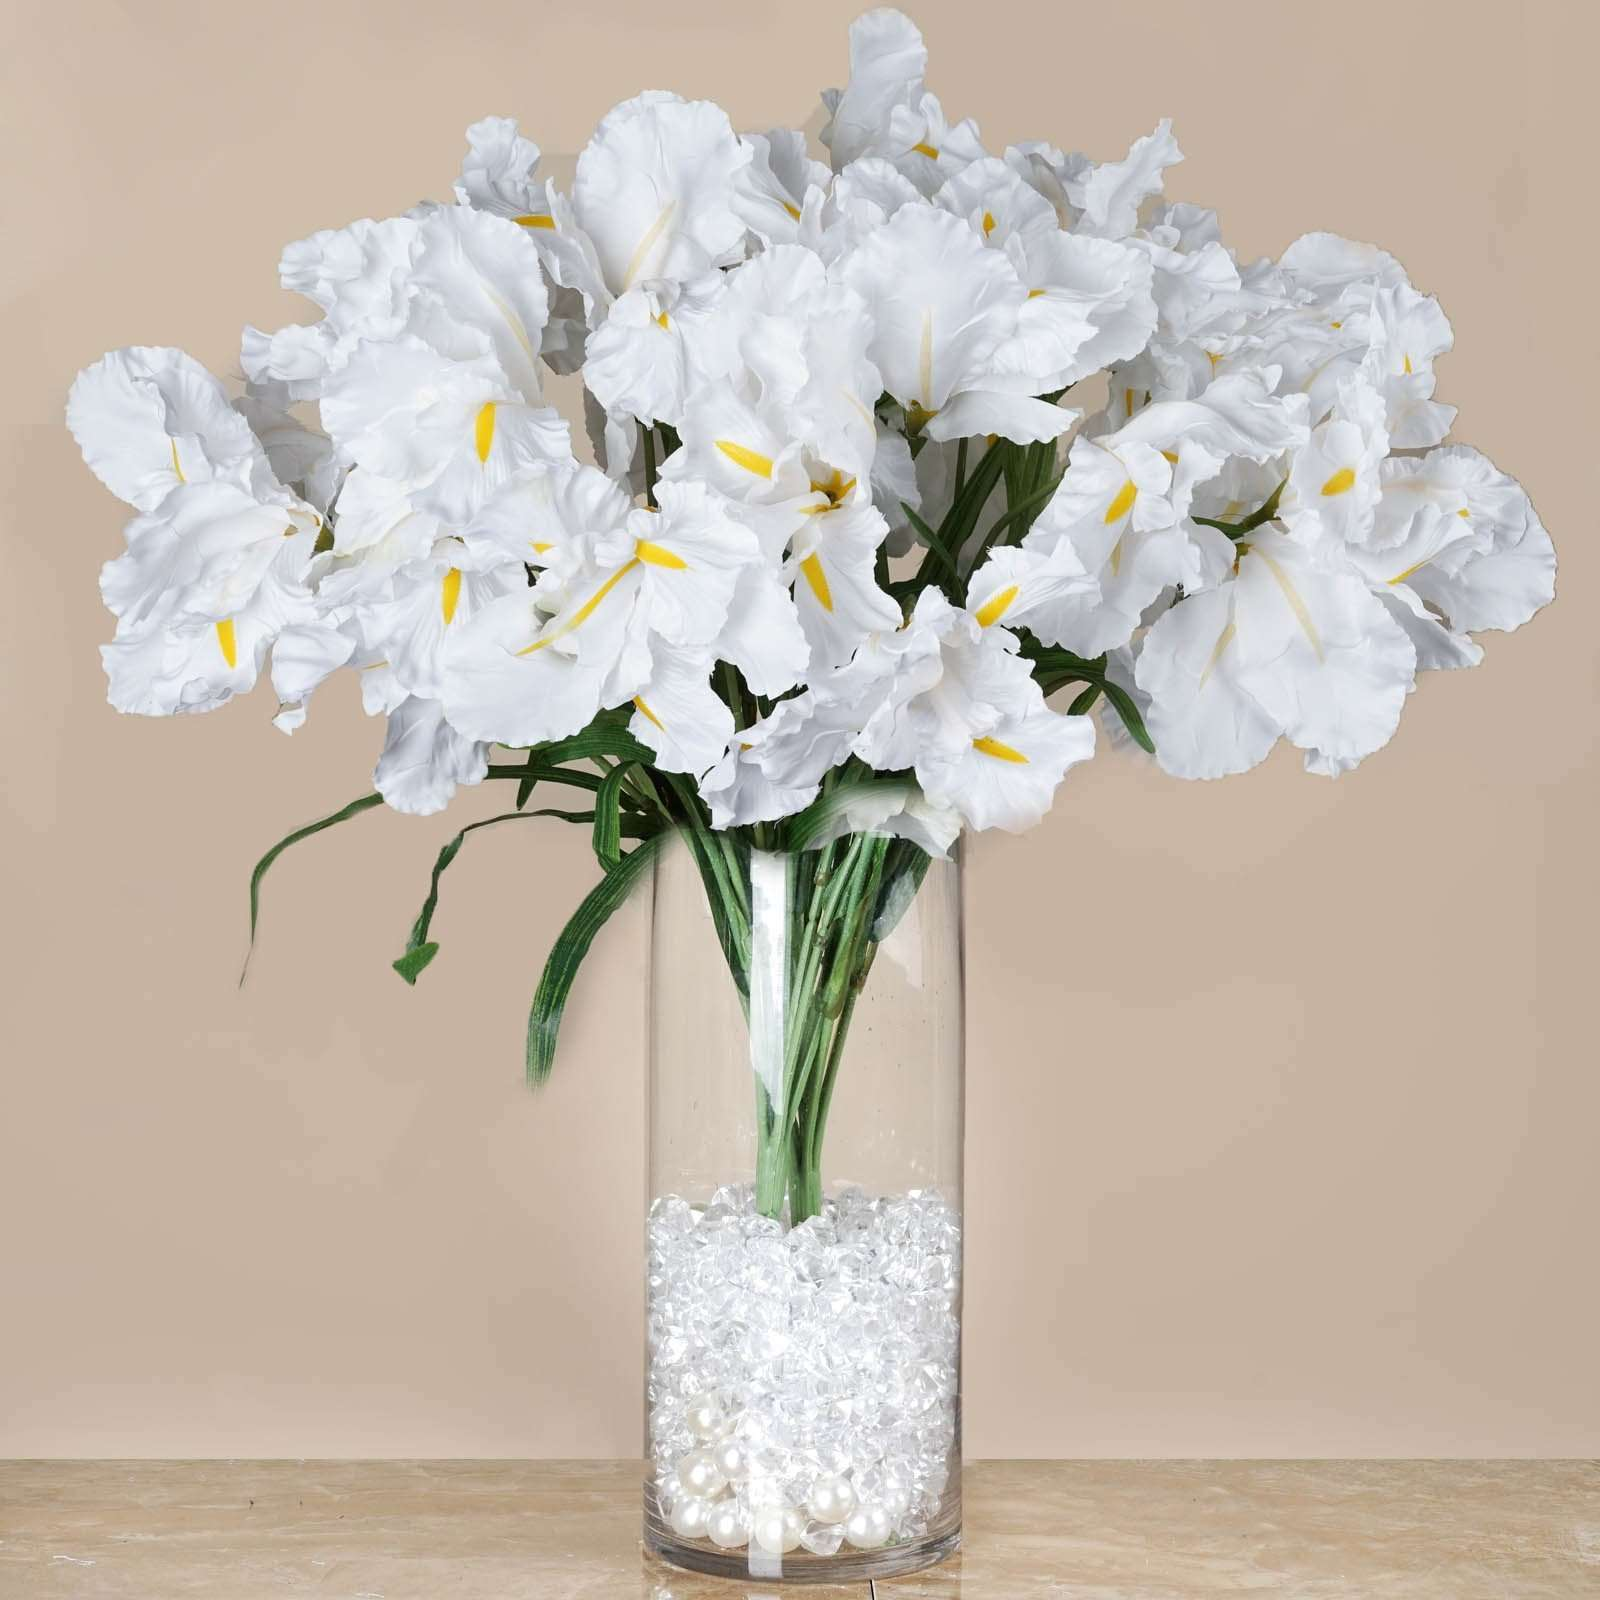 4 Bush 36 Pcs White Artificial Large Iris Flowers Bridal Bouquet